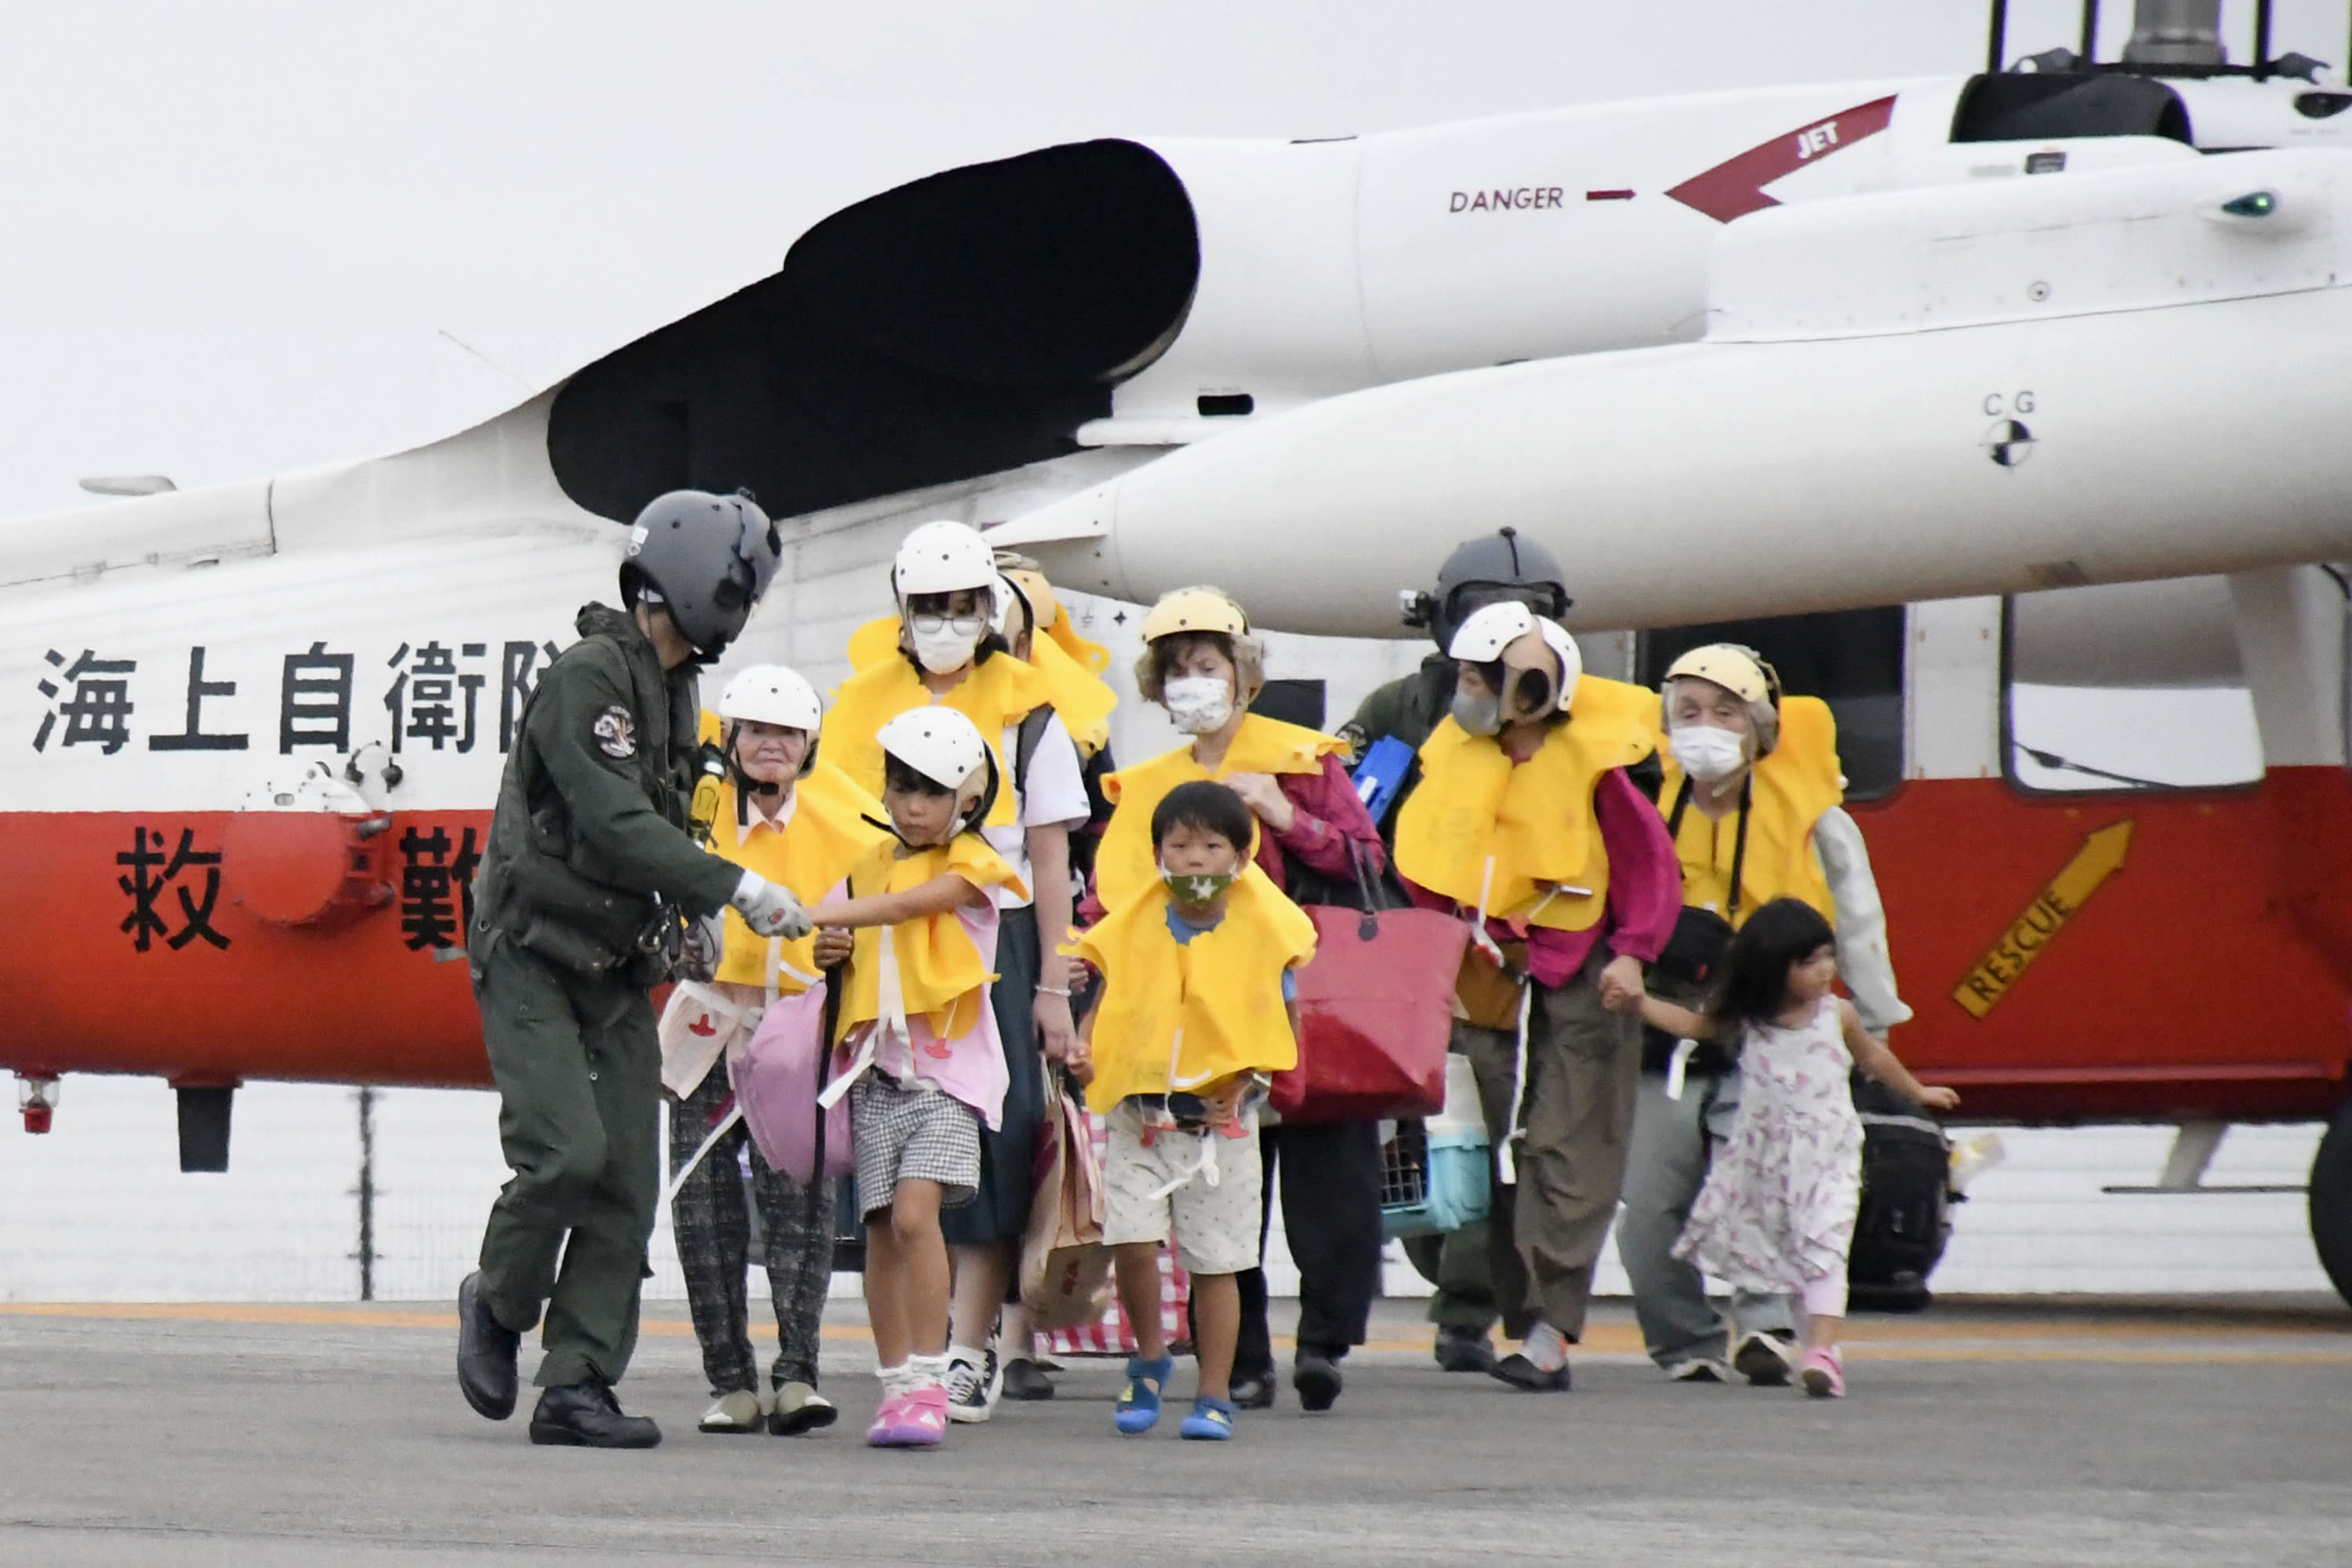 Residents of the islands arrive at a heliport in Kagoshima, southern Japan Friday, Sept. 4, 2020 to take refuge ahead of a powerful typhoon. A powerful typhoon was barreling toward the southern cluster of Japanese Okinawa islands on Saturday, prompting warnings about torrential rainfall and fierce wind gusts. (Kyodo News via AP)